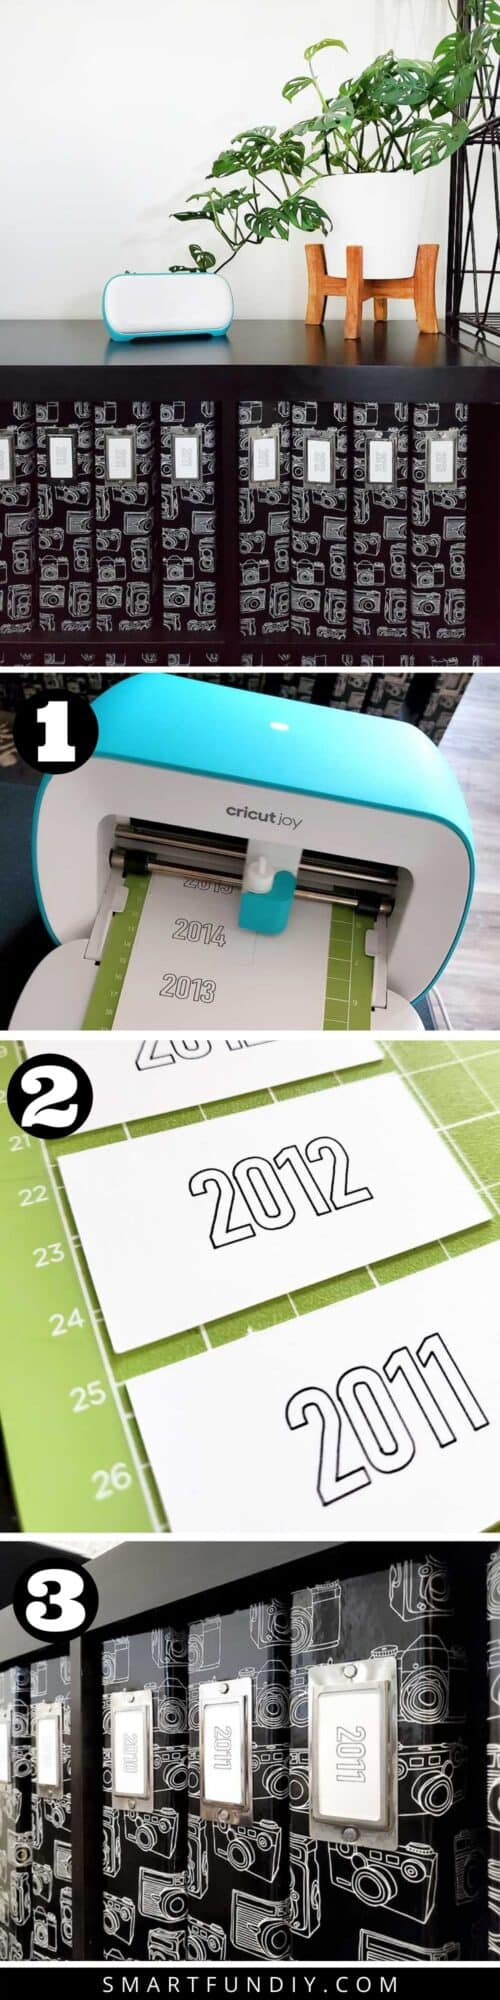 4 step by step photos showing how to make paper labels for scrapbooks using Cricut Joy machine